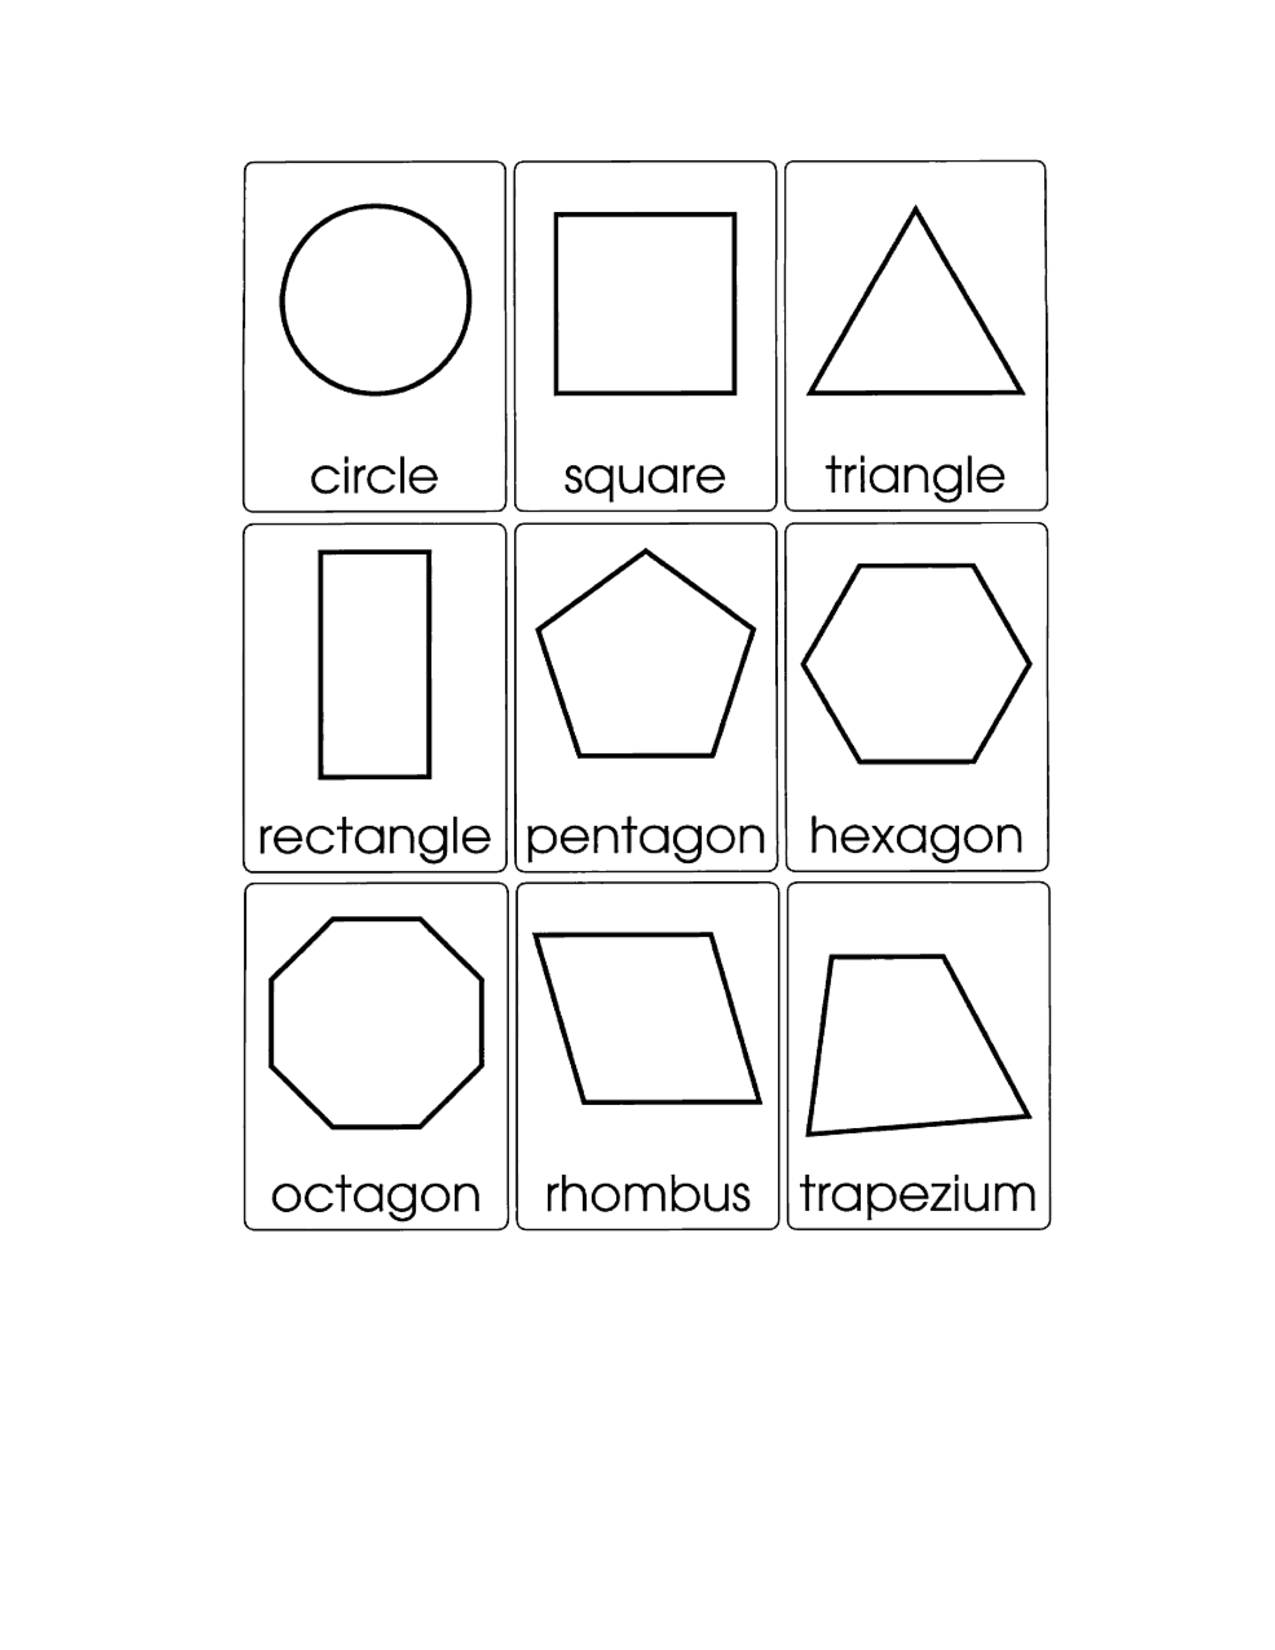 2d Geometric Shapes Chart 10 Best Images Of 2d Shapes Worksheets 2d Shape Names